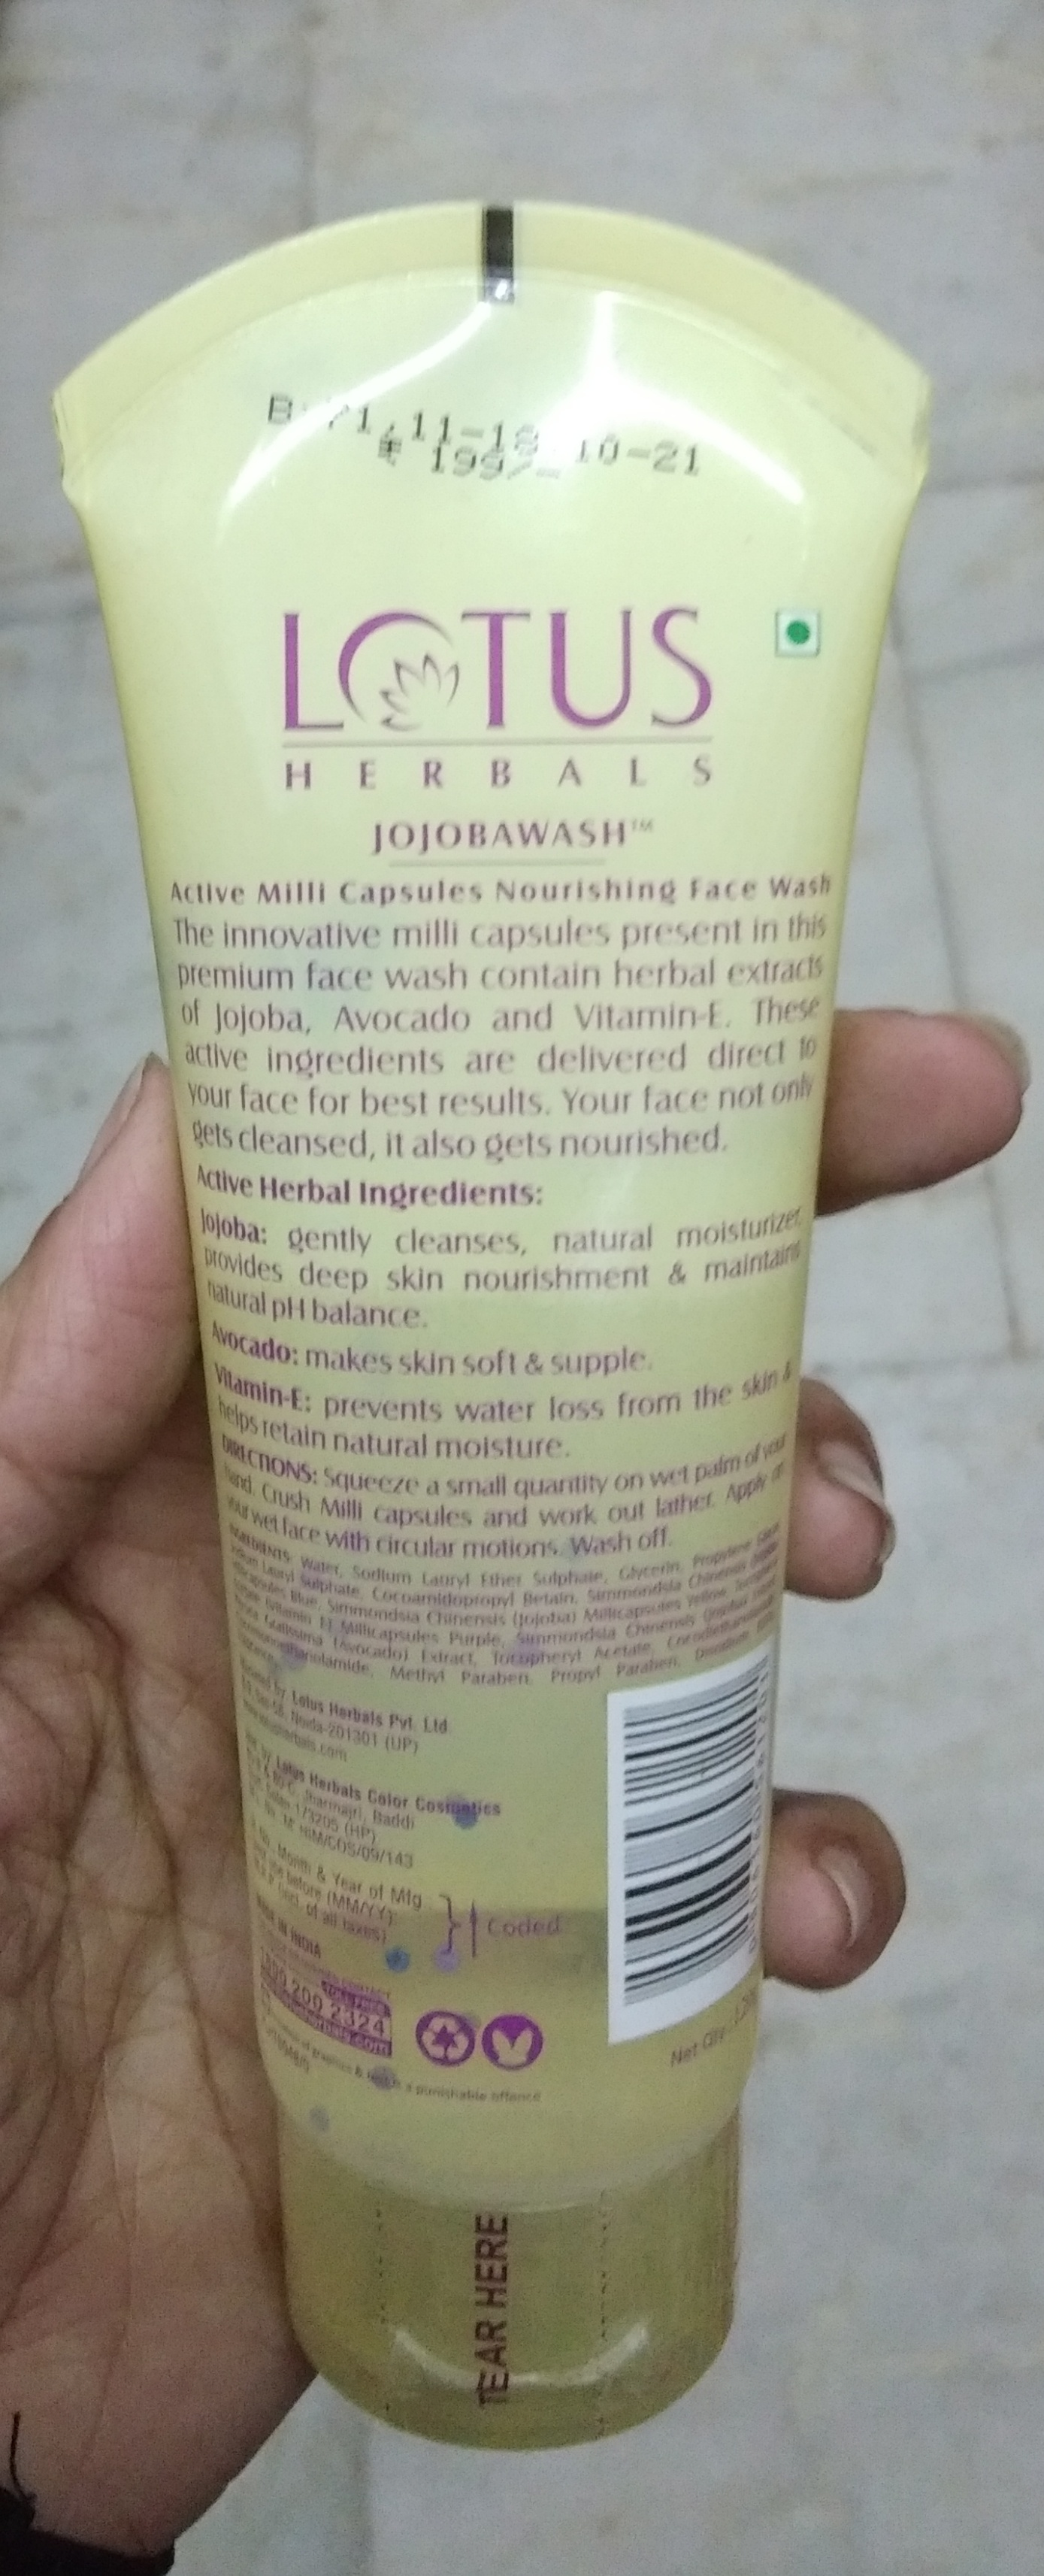 Lotus Herbals Jojoba Wash Active Milli Capsules Nourishing Face Wash-Expensive but good-By Nasreen-2